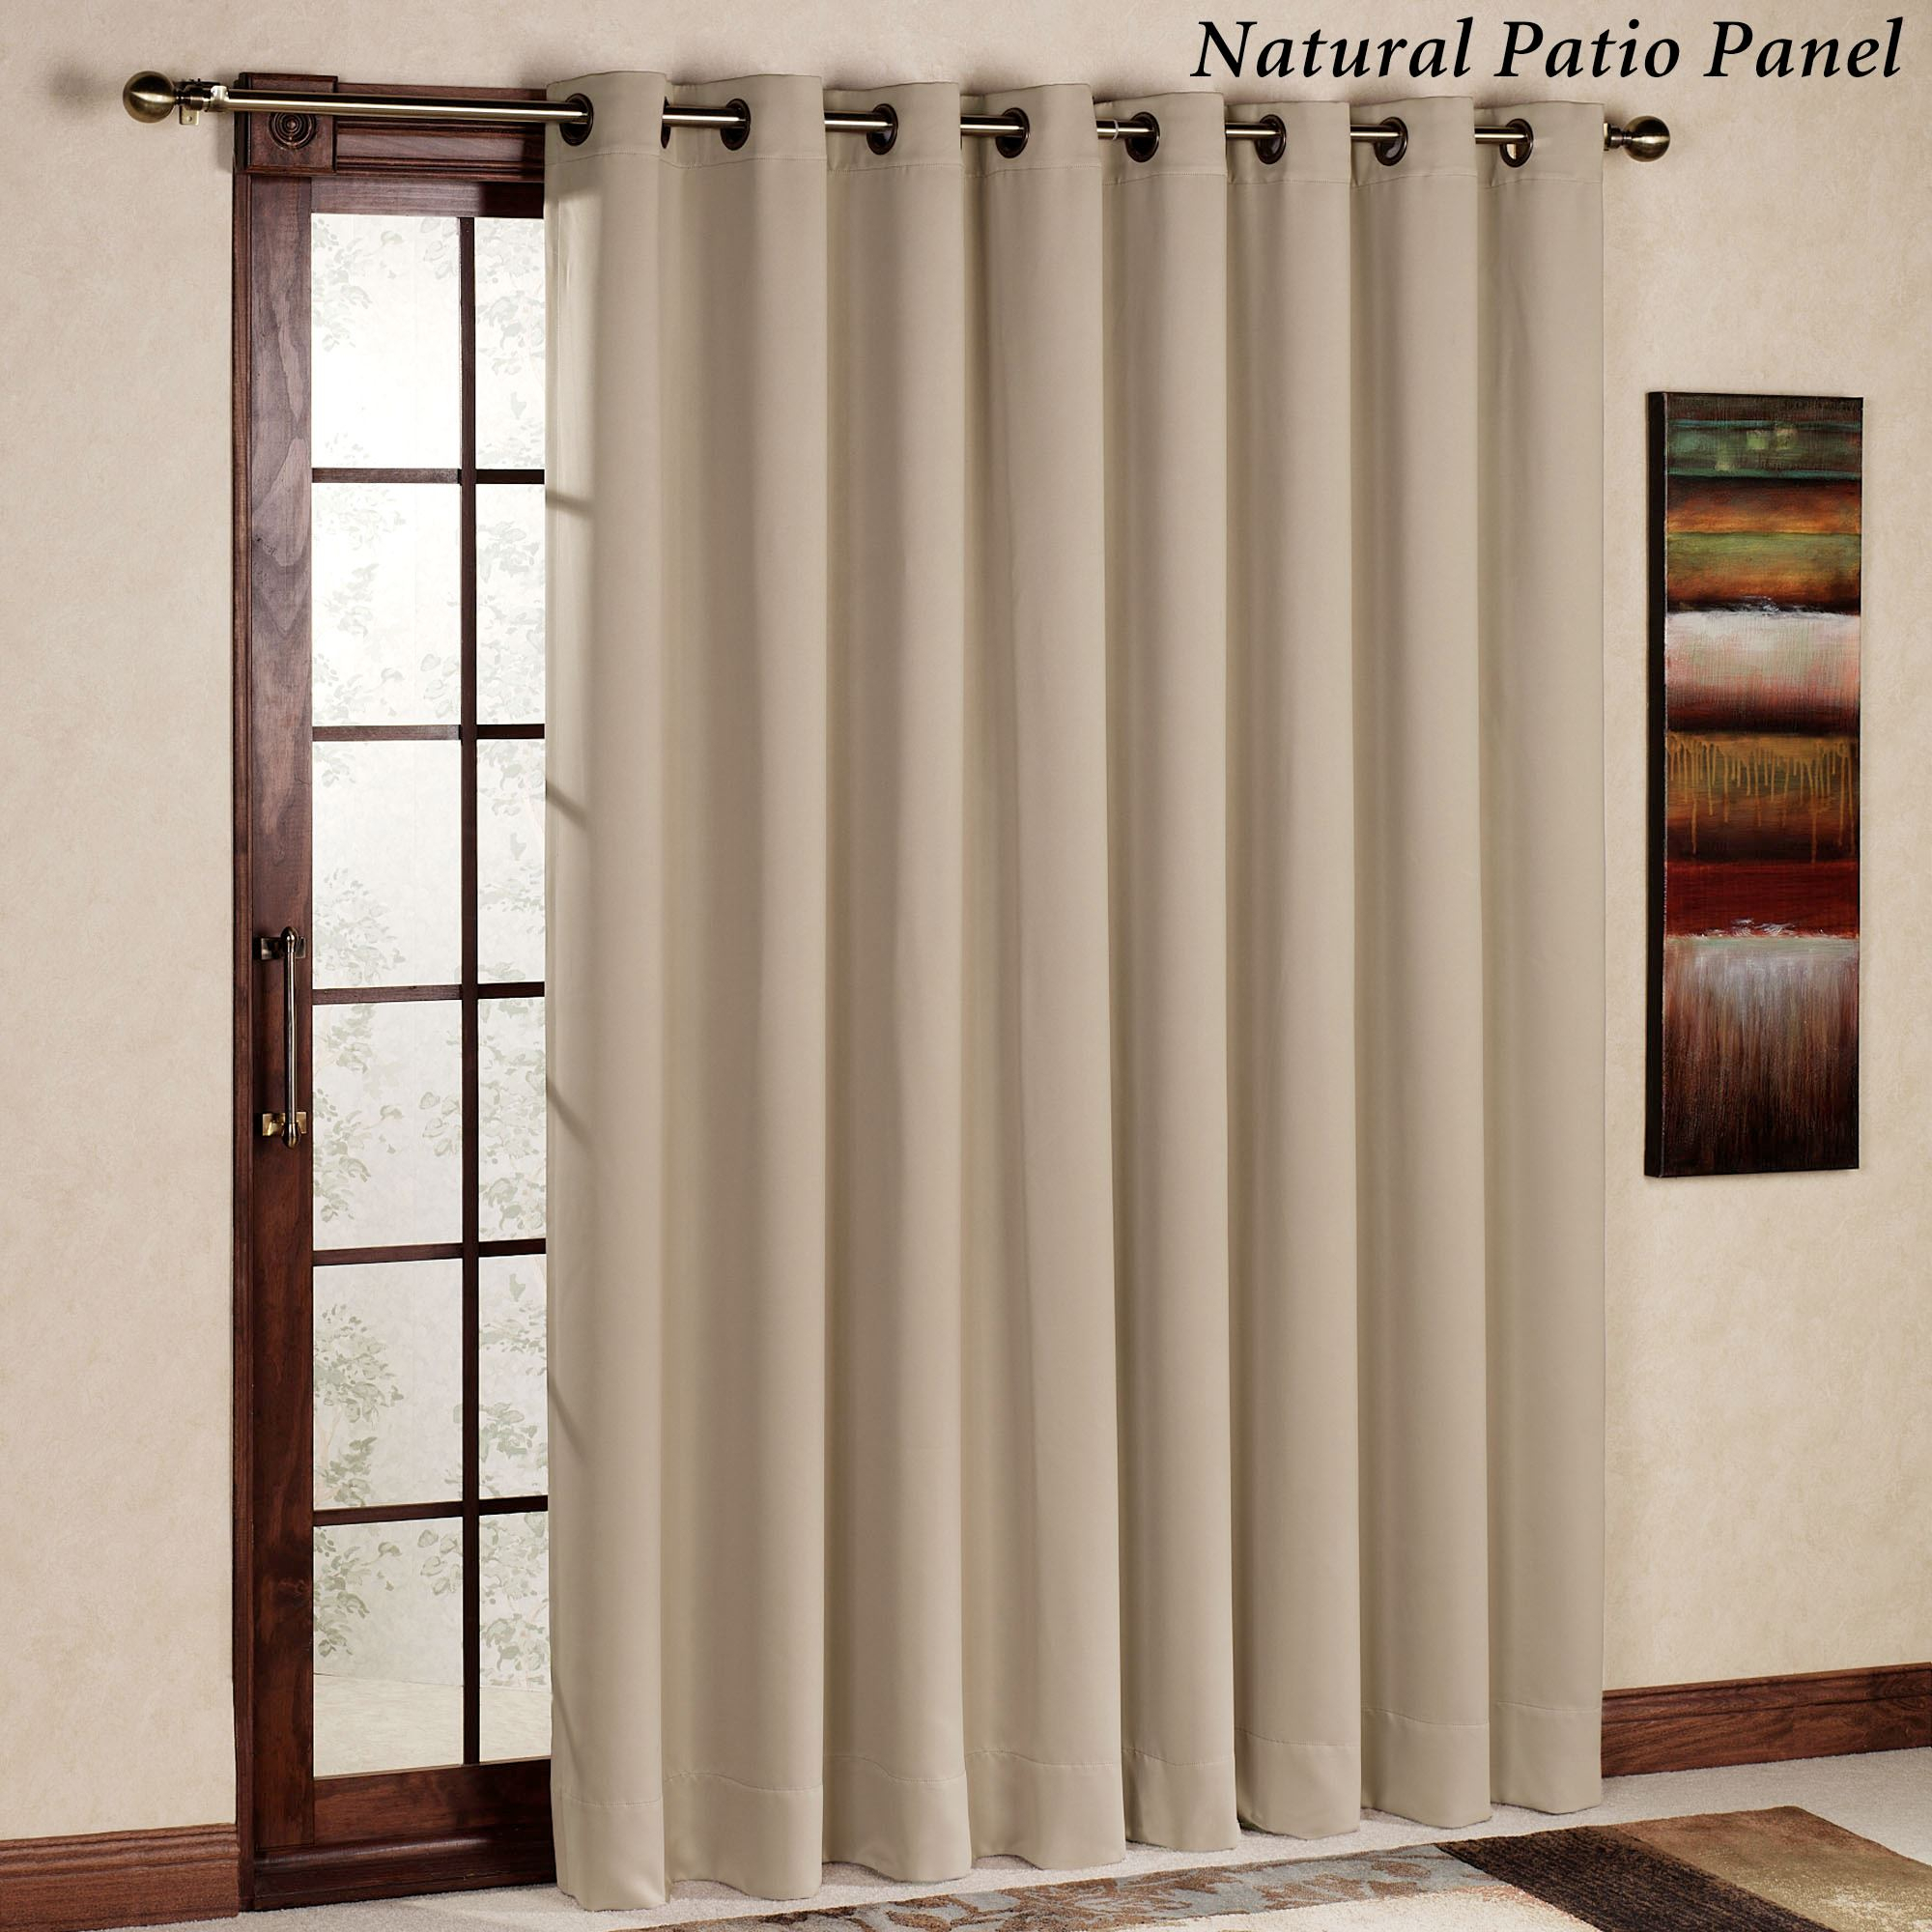 Ultimate Blackout Grommet Curtain Panel Regarding Ultimate Blackout Short Length Grommet Curtain Panels (View 7 of 30)